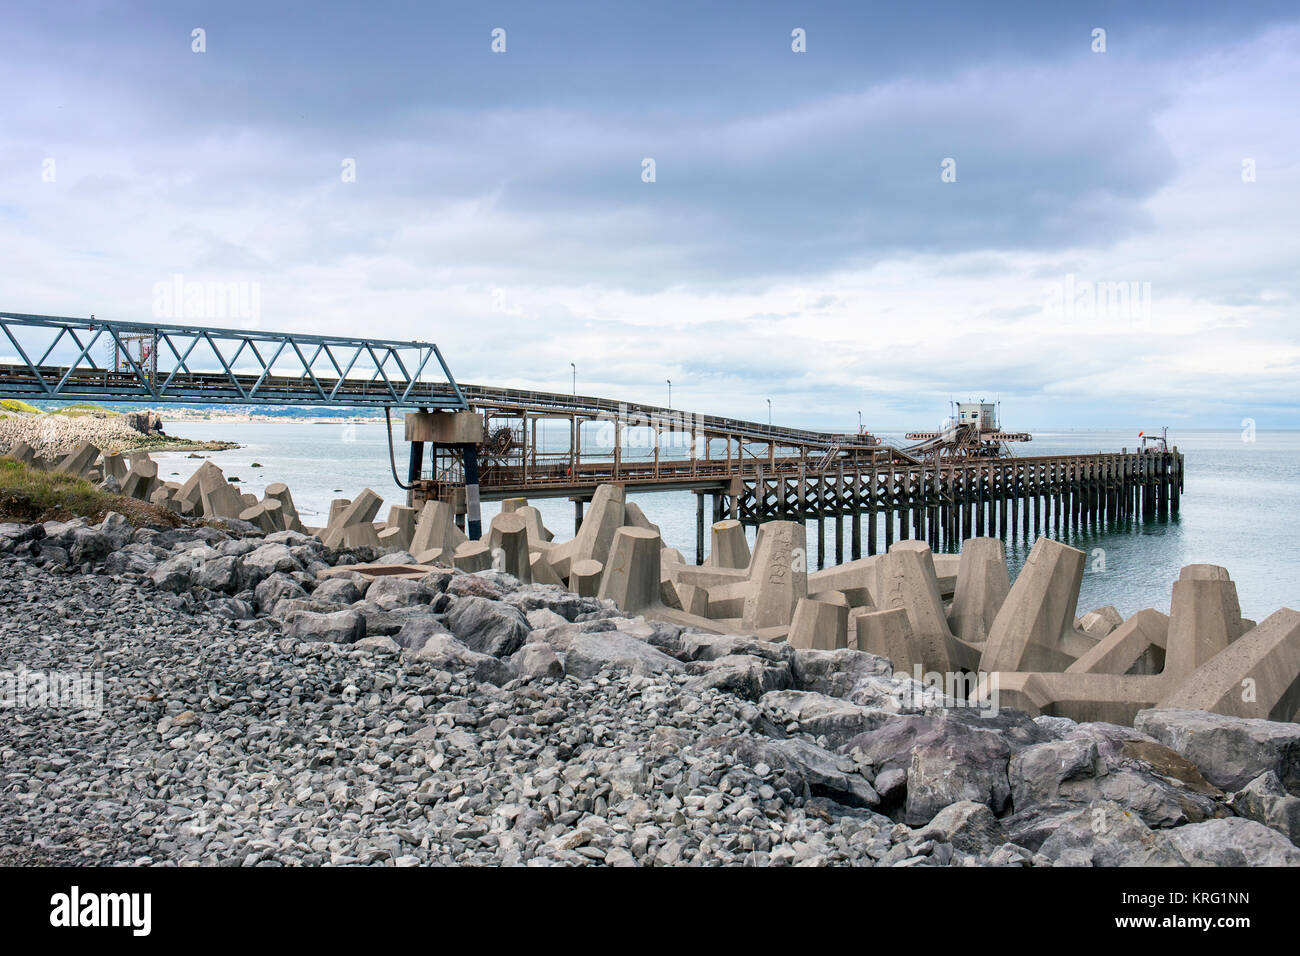 Raynes jetty with sea defence in Llanddulas North Wales UK - Stock Image